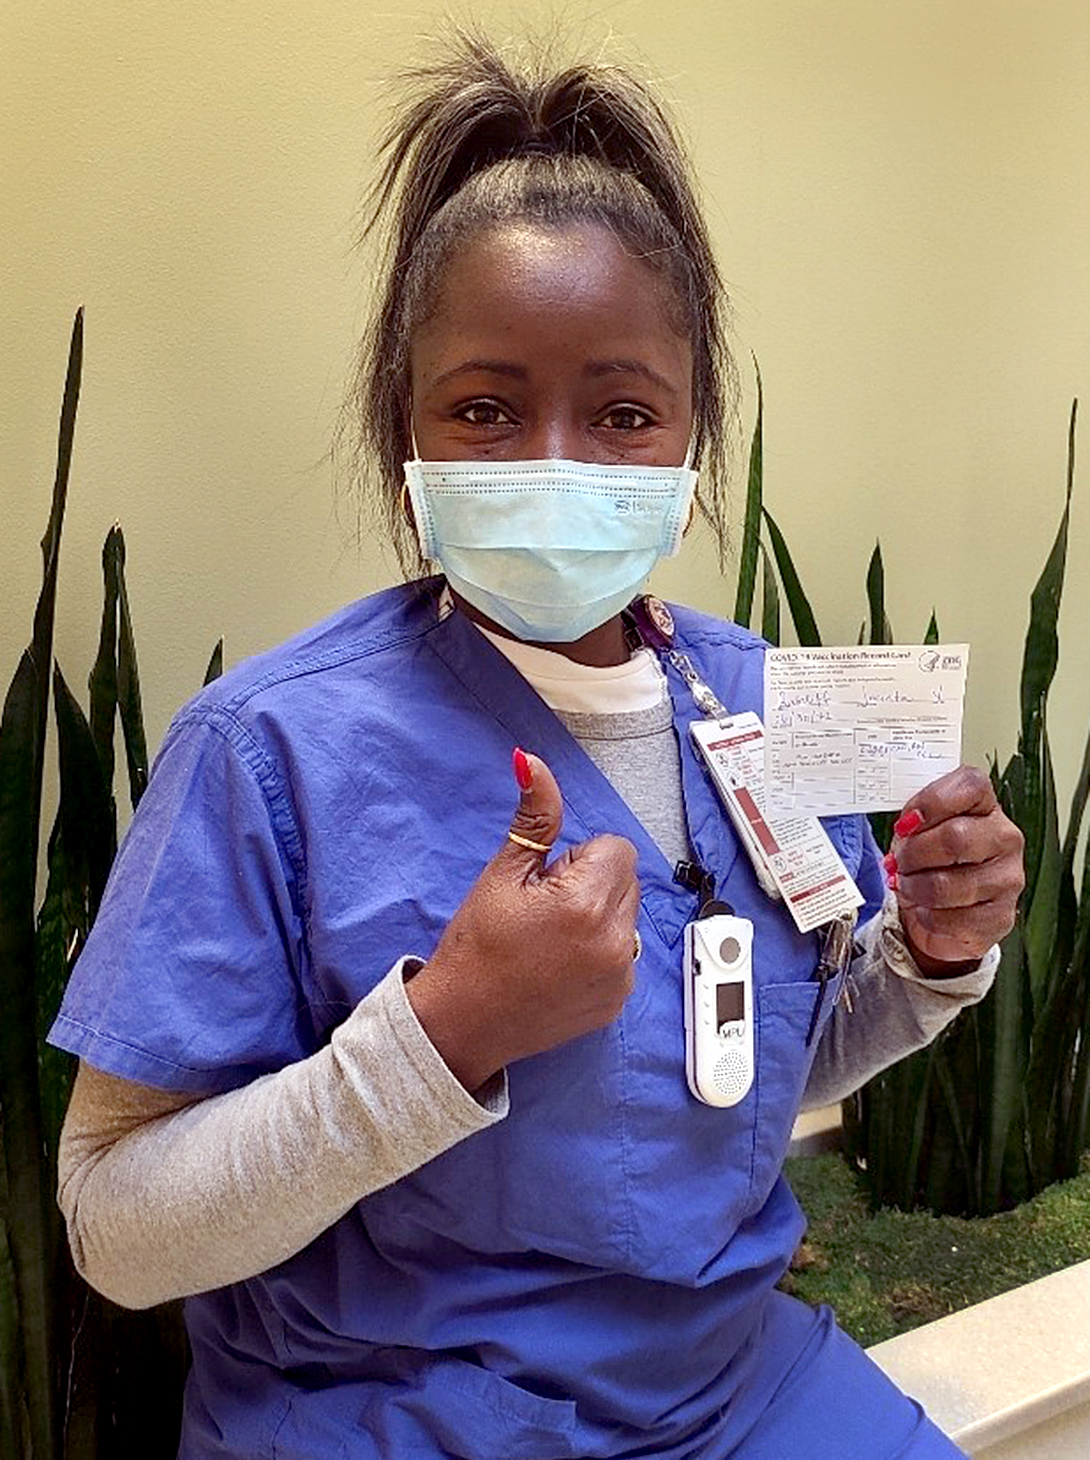 Black woman wearing blue scrubs, holding up her vaccination cards and giving the thumbs-up signal